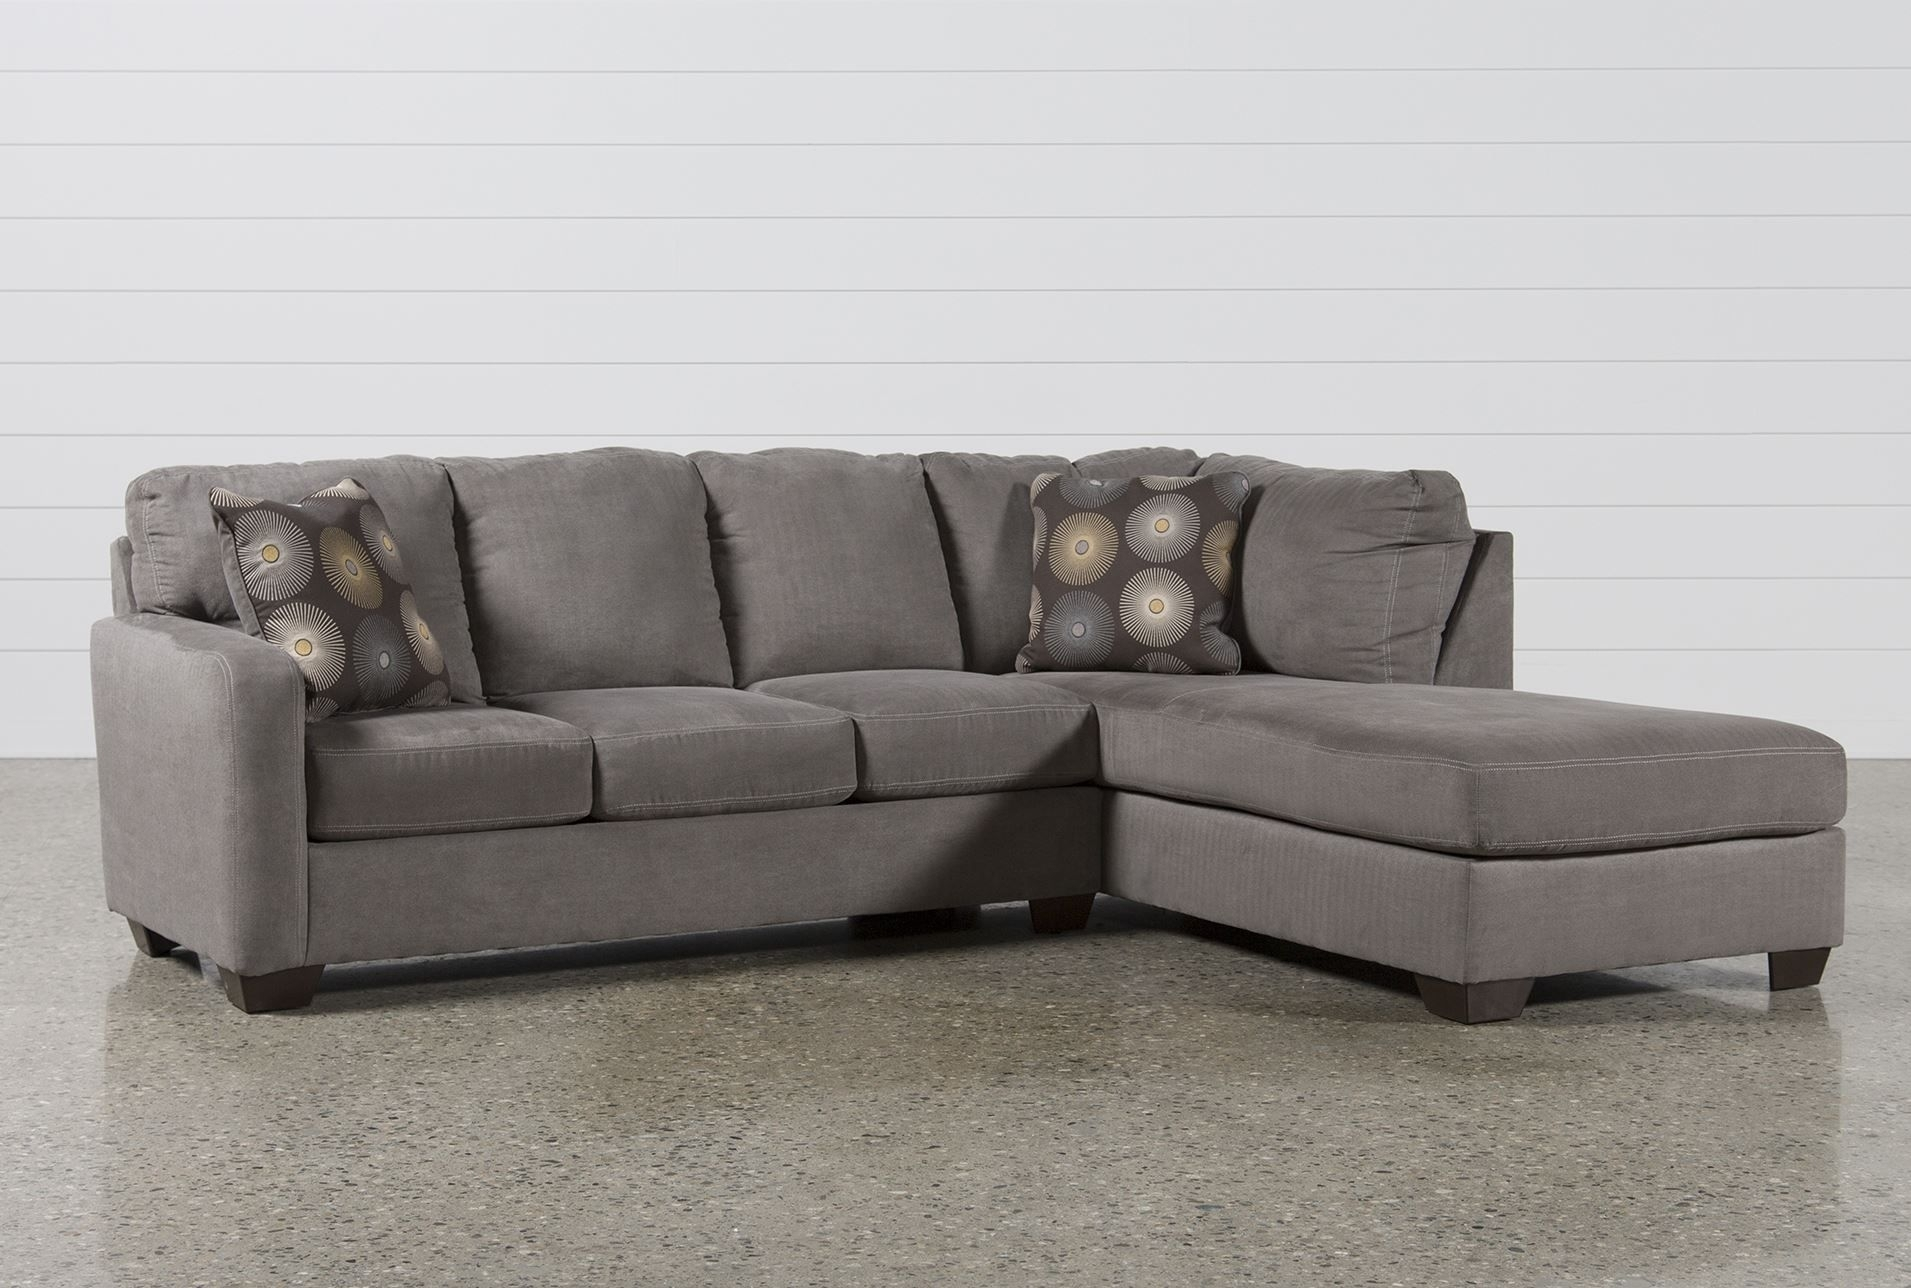 Zella Charcoal 2 Piece Sectional W/raf Chaise | Living Spaces With Regard To Avery 2 Piece Sectionals With Raf Armless Chaise (Photo 6317 of 7746)